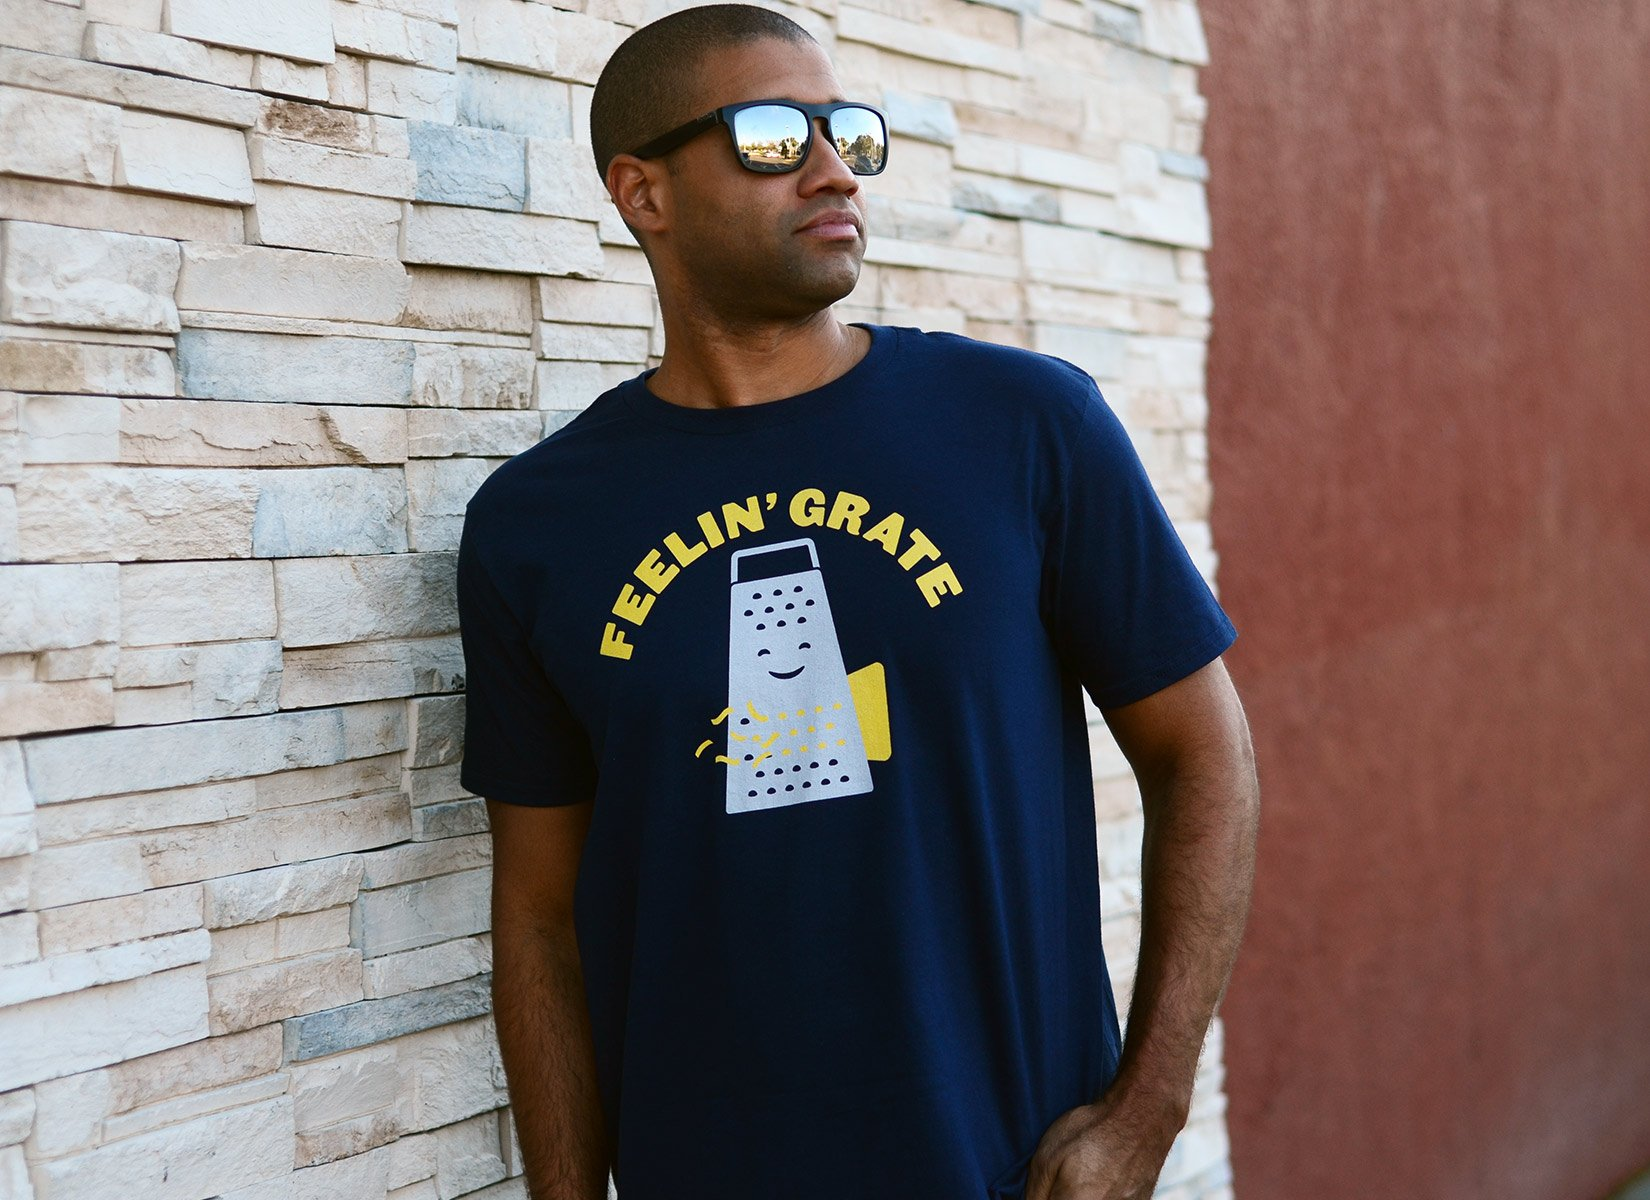 Feelin' Grate on Mens T-Shirt